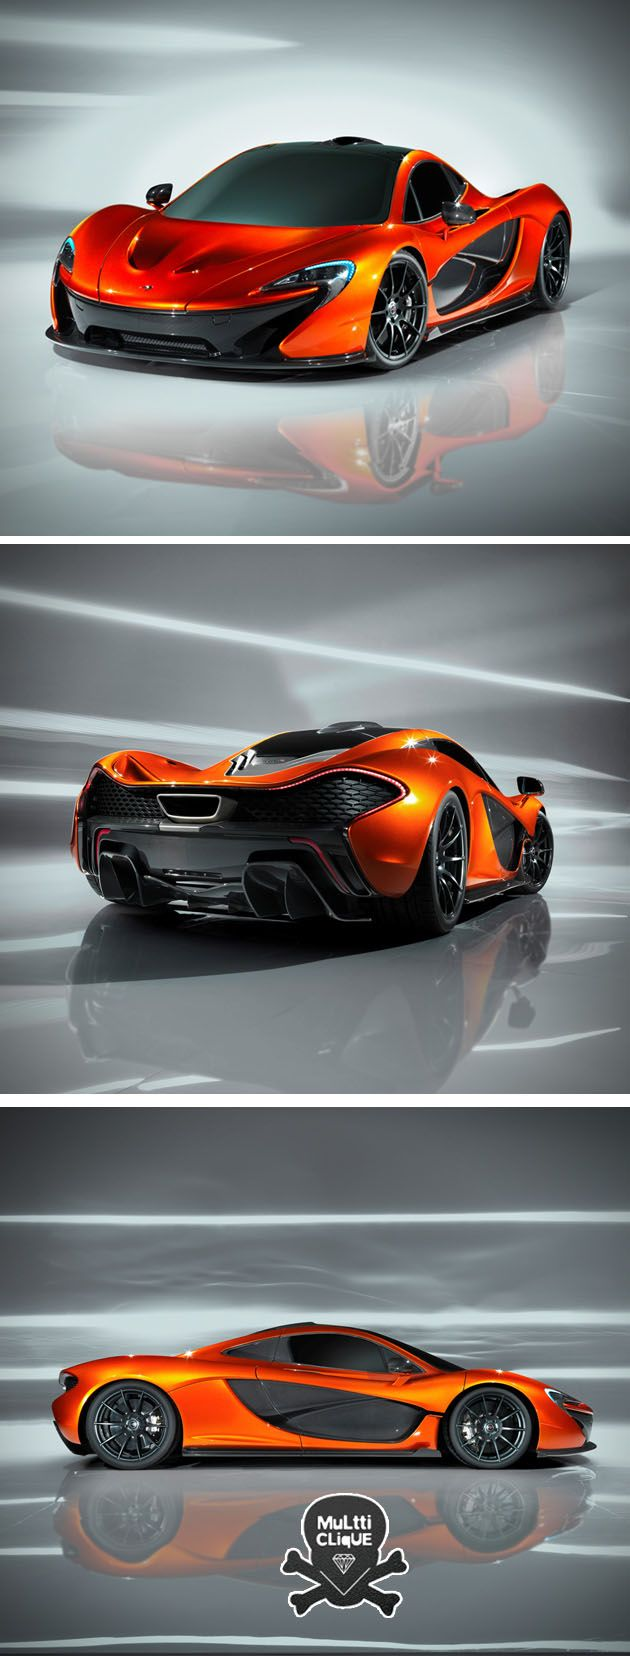 the-mclaren-p1-without-a-doubt-the-most-enticing-and-alluring-super-car-iv.jpg